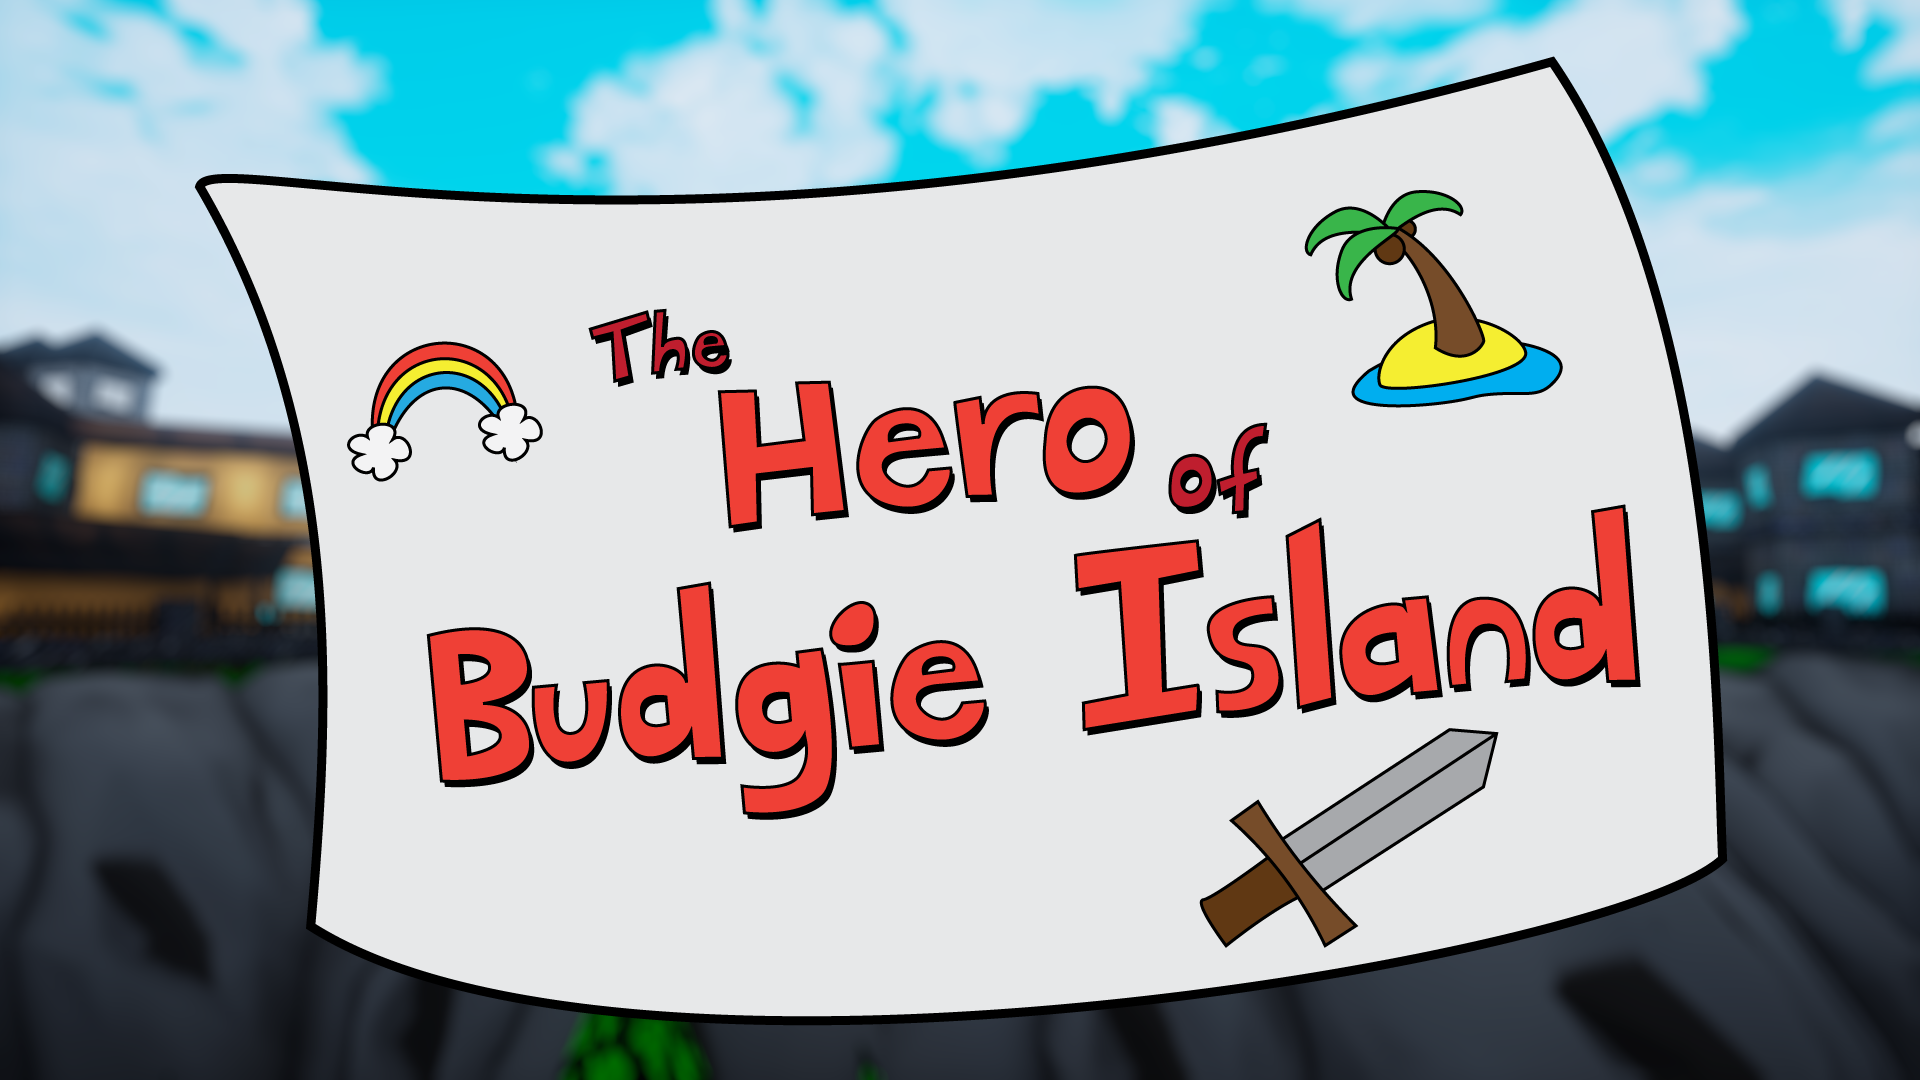 The Hero of Budgie Island